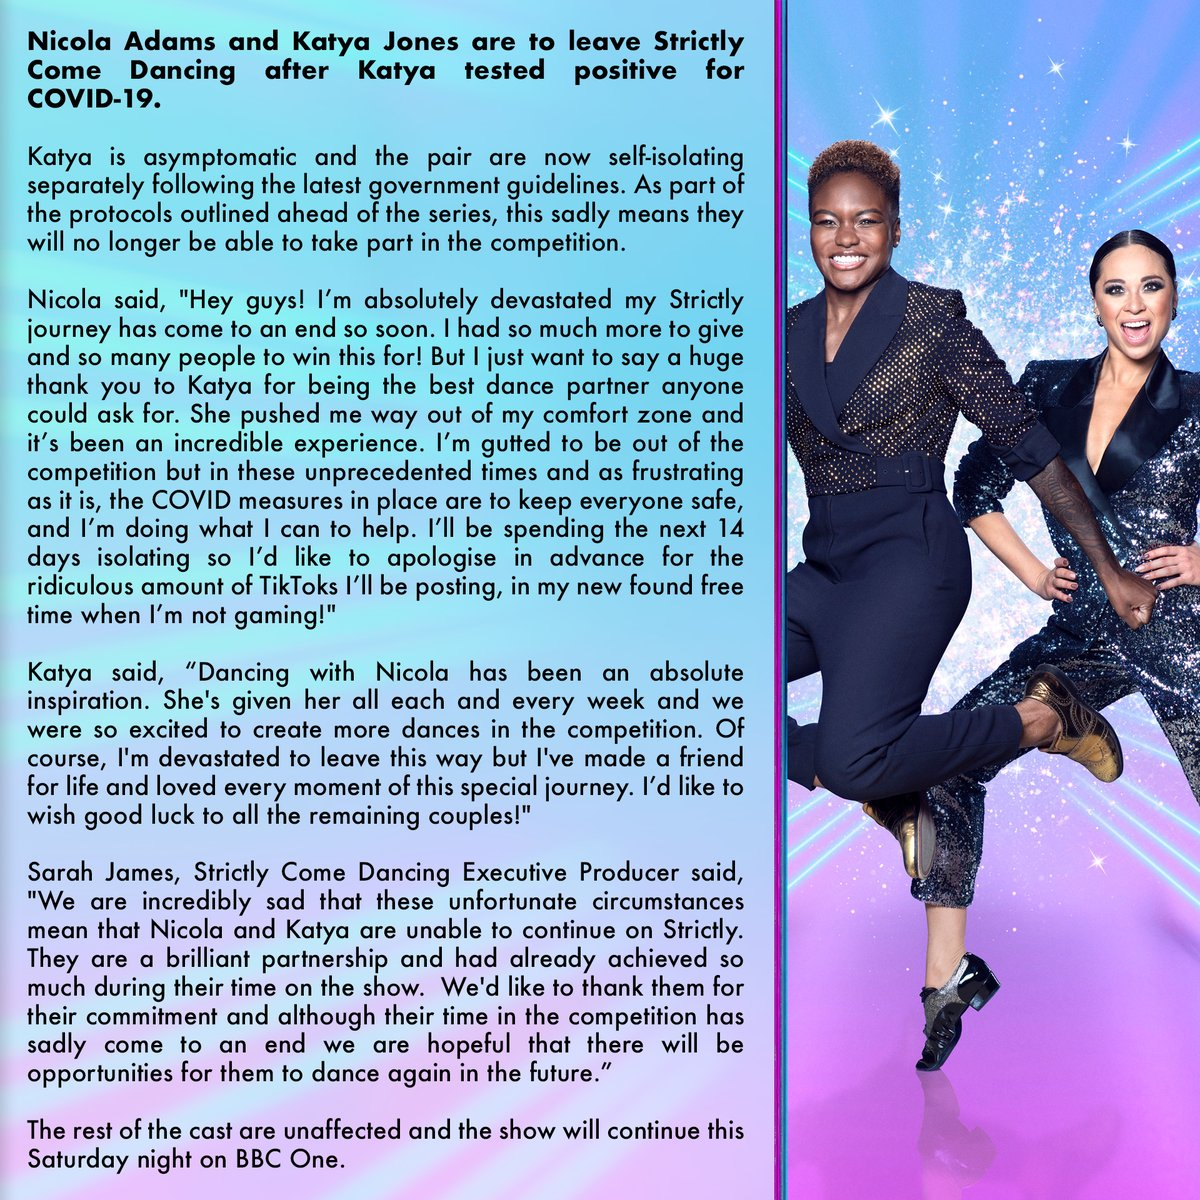 Sadly Nicola and Katya are leaving #Strictly Come Dancing. Full statement here 👉